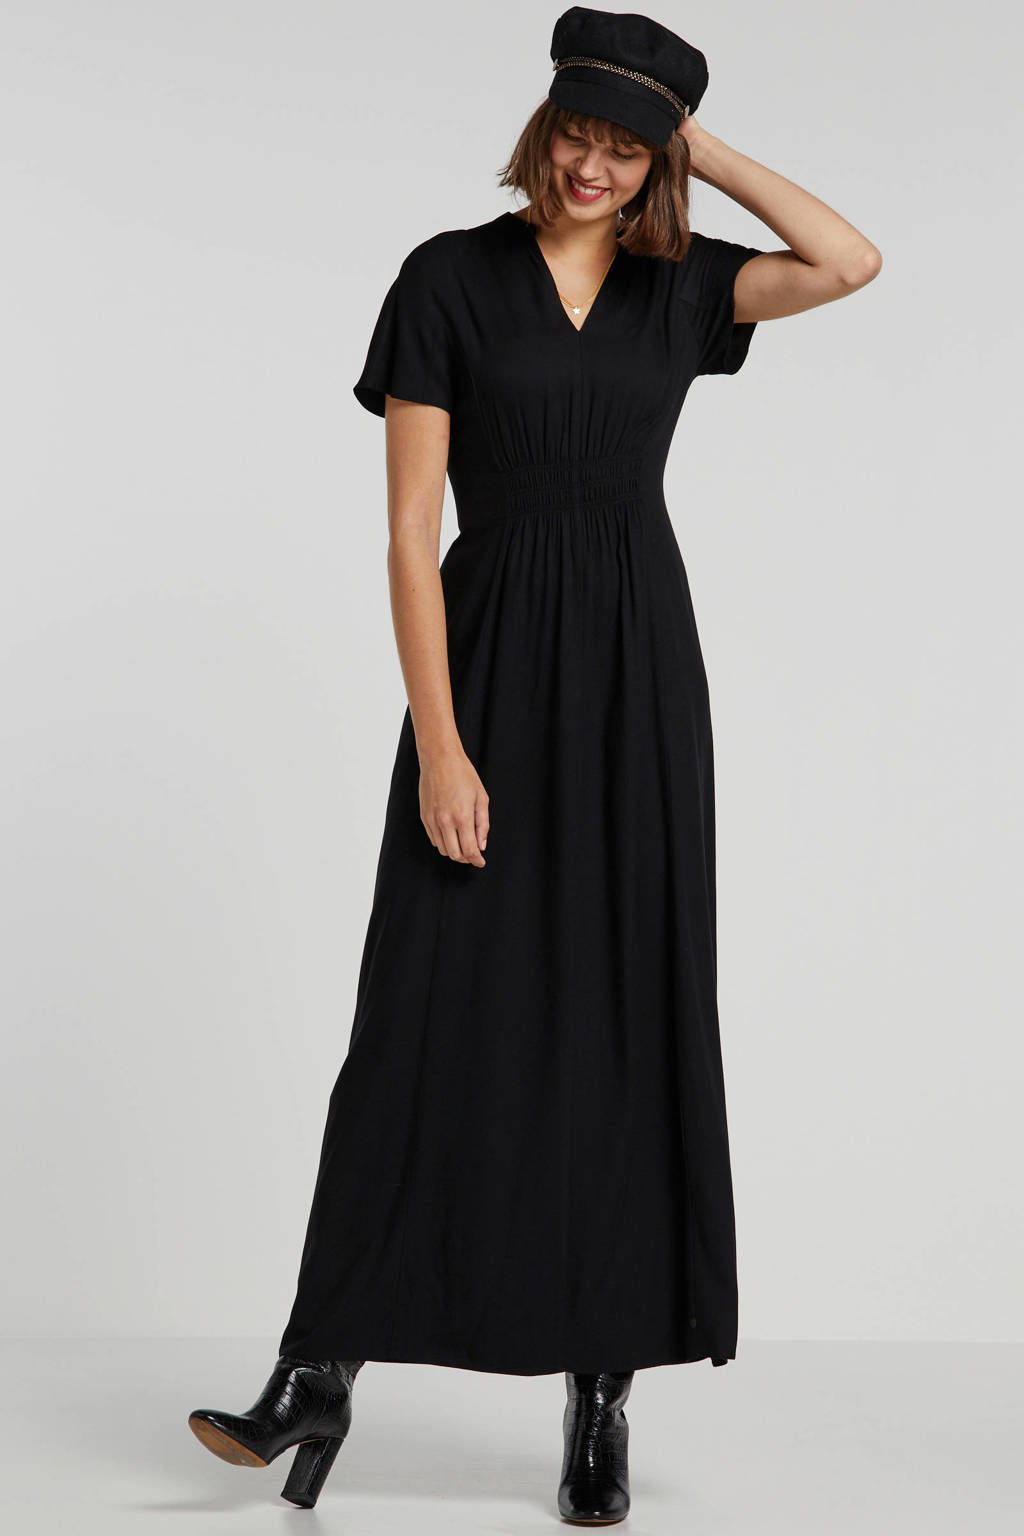 Scotch & Soda maxi jurk zwart, Zwart